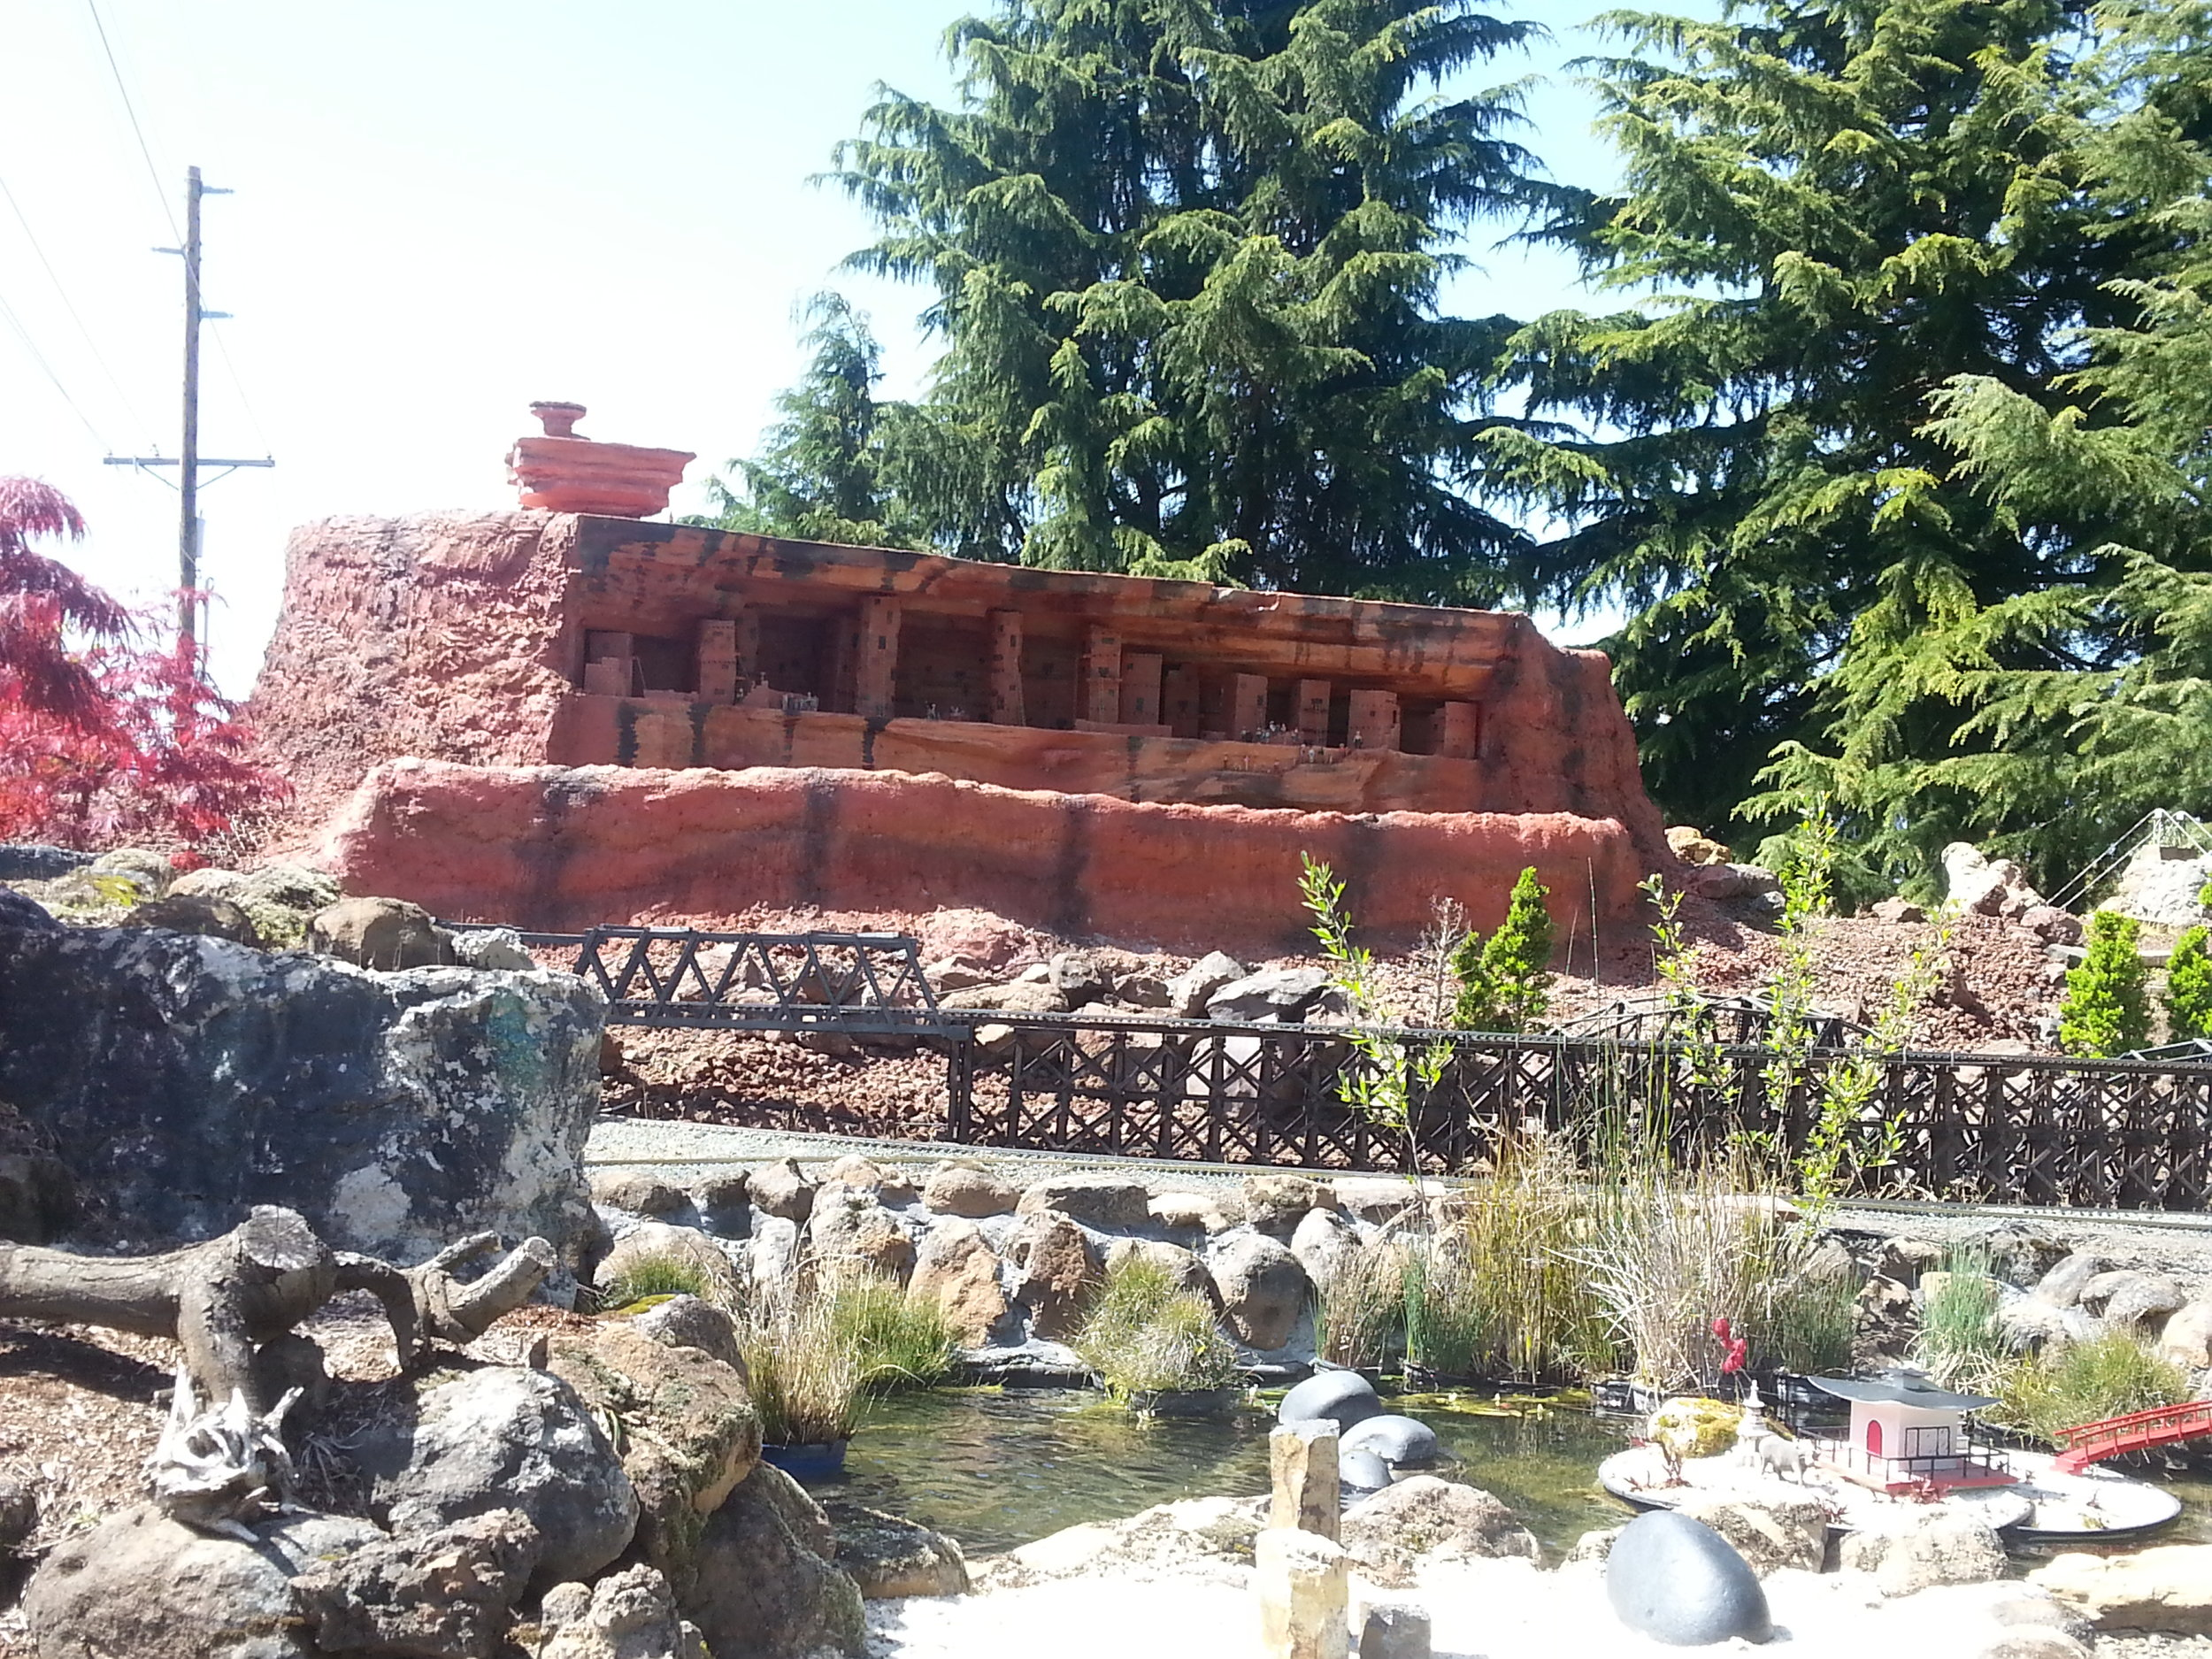 MEDFORD RAILROAD PARK - FREE FUN FOR THE WHOLE FAMILY - What to do in Southern Oregon- Things to do - Where to Have Birthday Parties